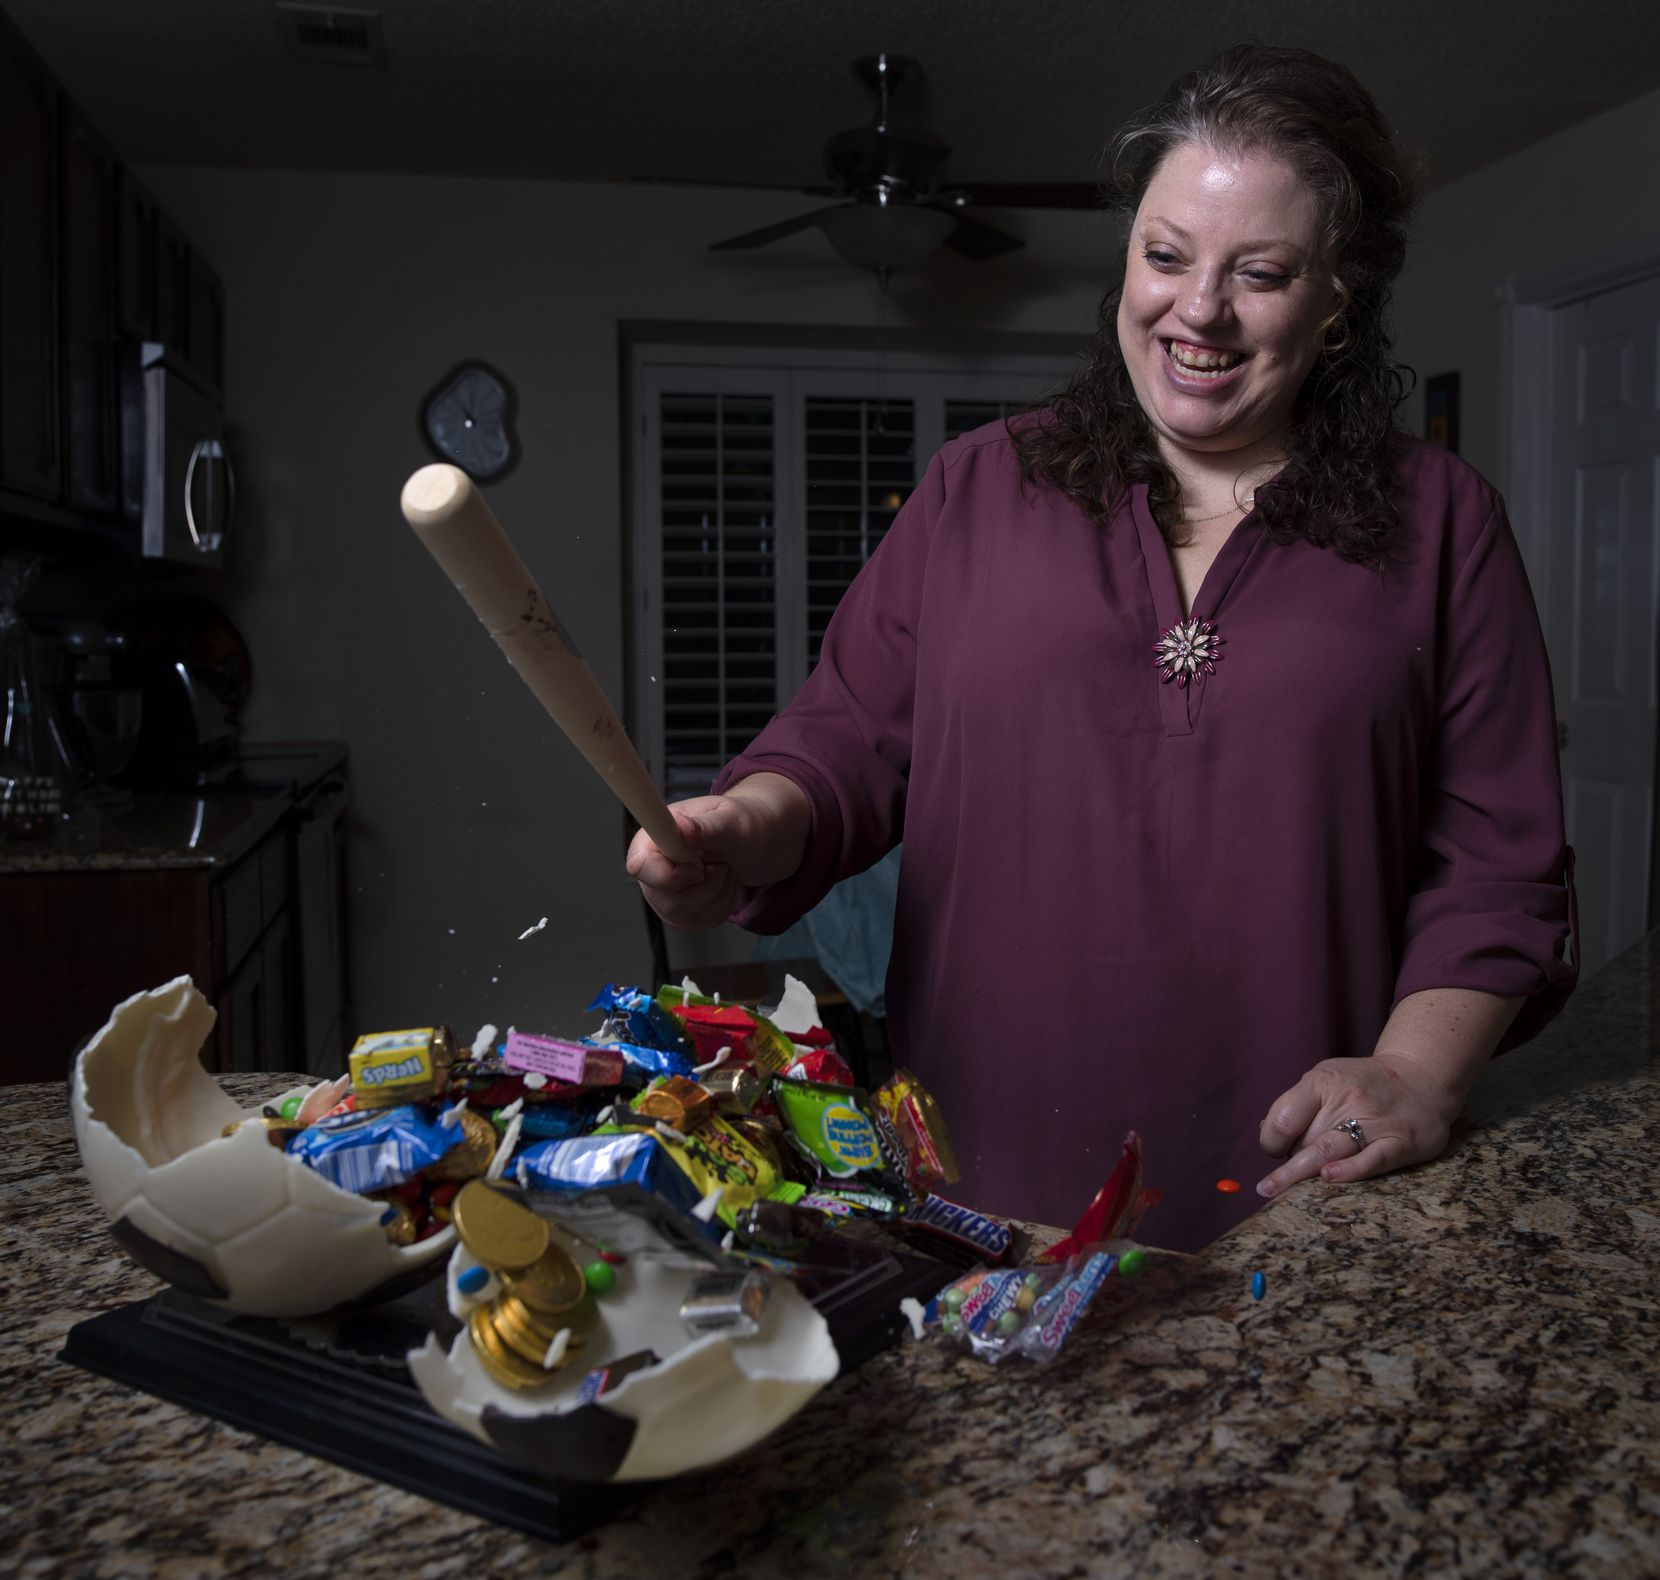 Jill Baethge, owner of Kaboom Chocolaka, smashes a soccer ball made of white chocolate as candy treats spill out of it, at her home in Plano, March 13, 2020. The treats she makes are similar to Pinatas, but with an outer edible shell. Ben Torres/Special Contributor